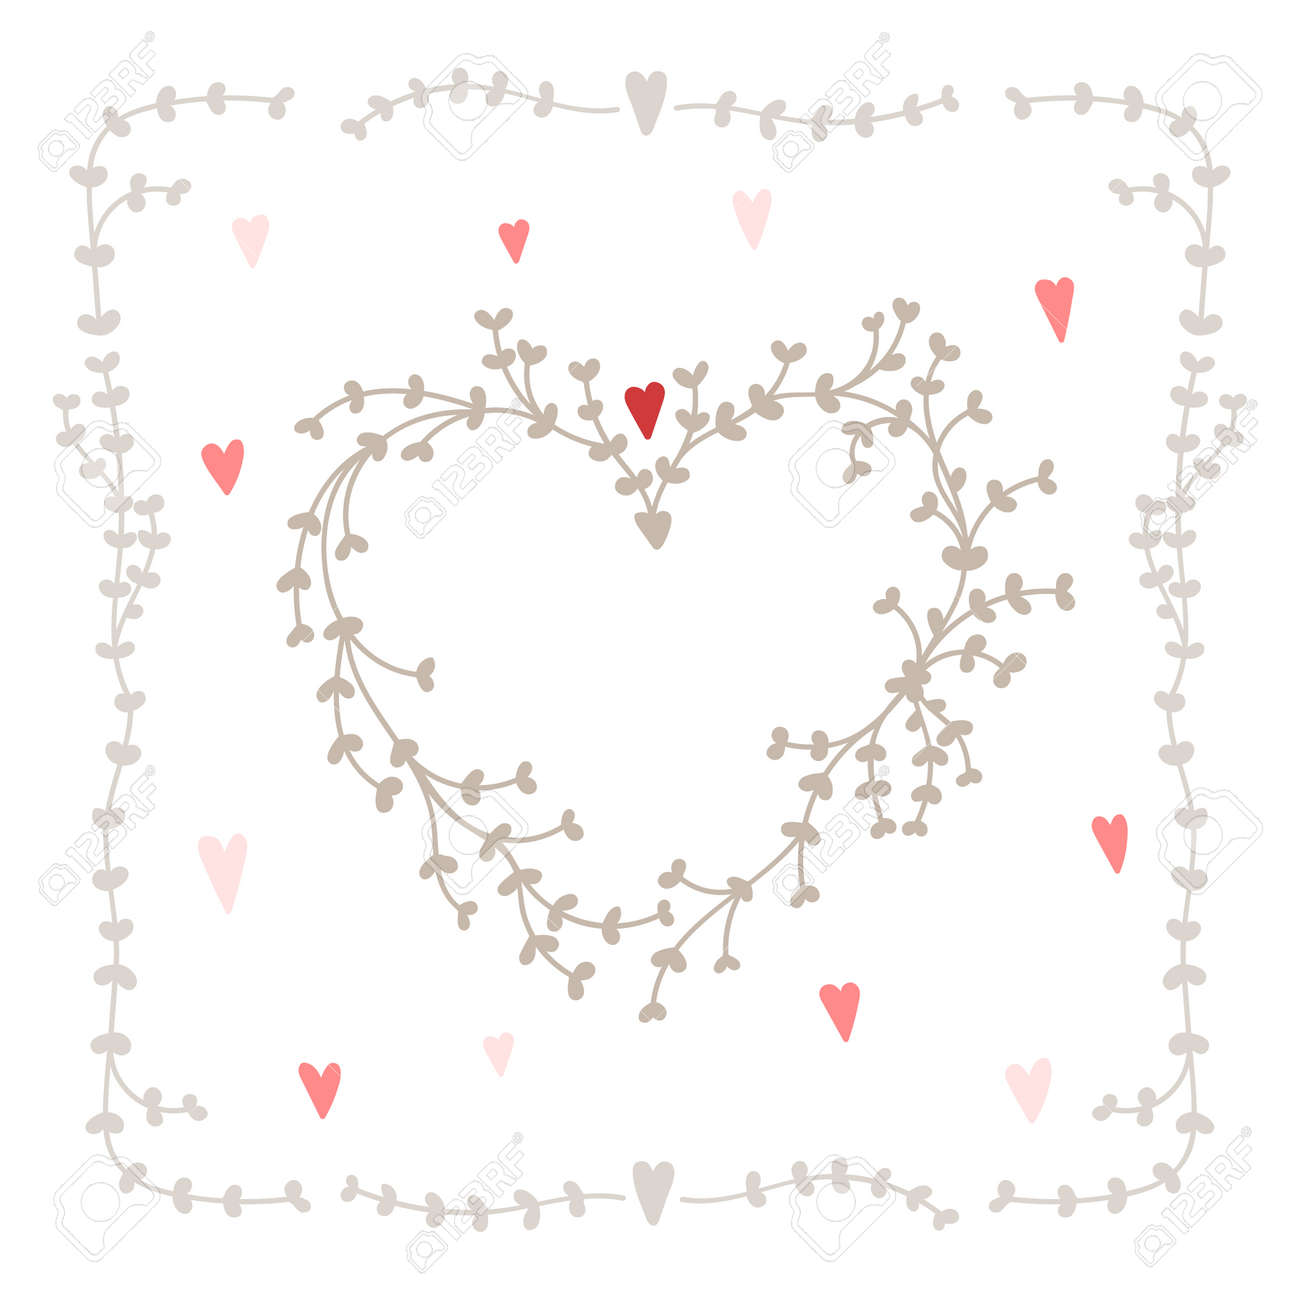 vector set with square wreath elements and hearts good for wedding